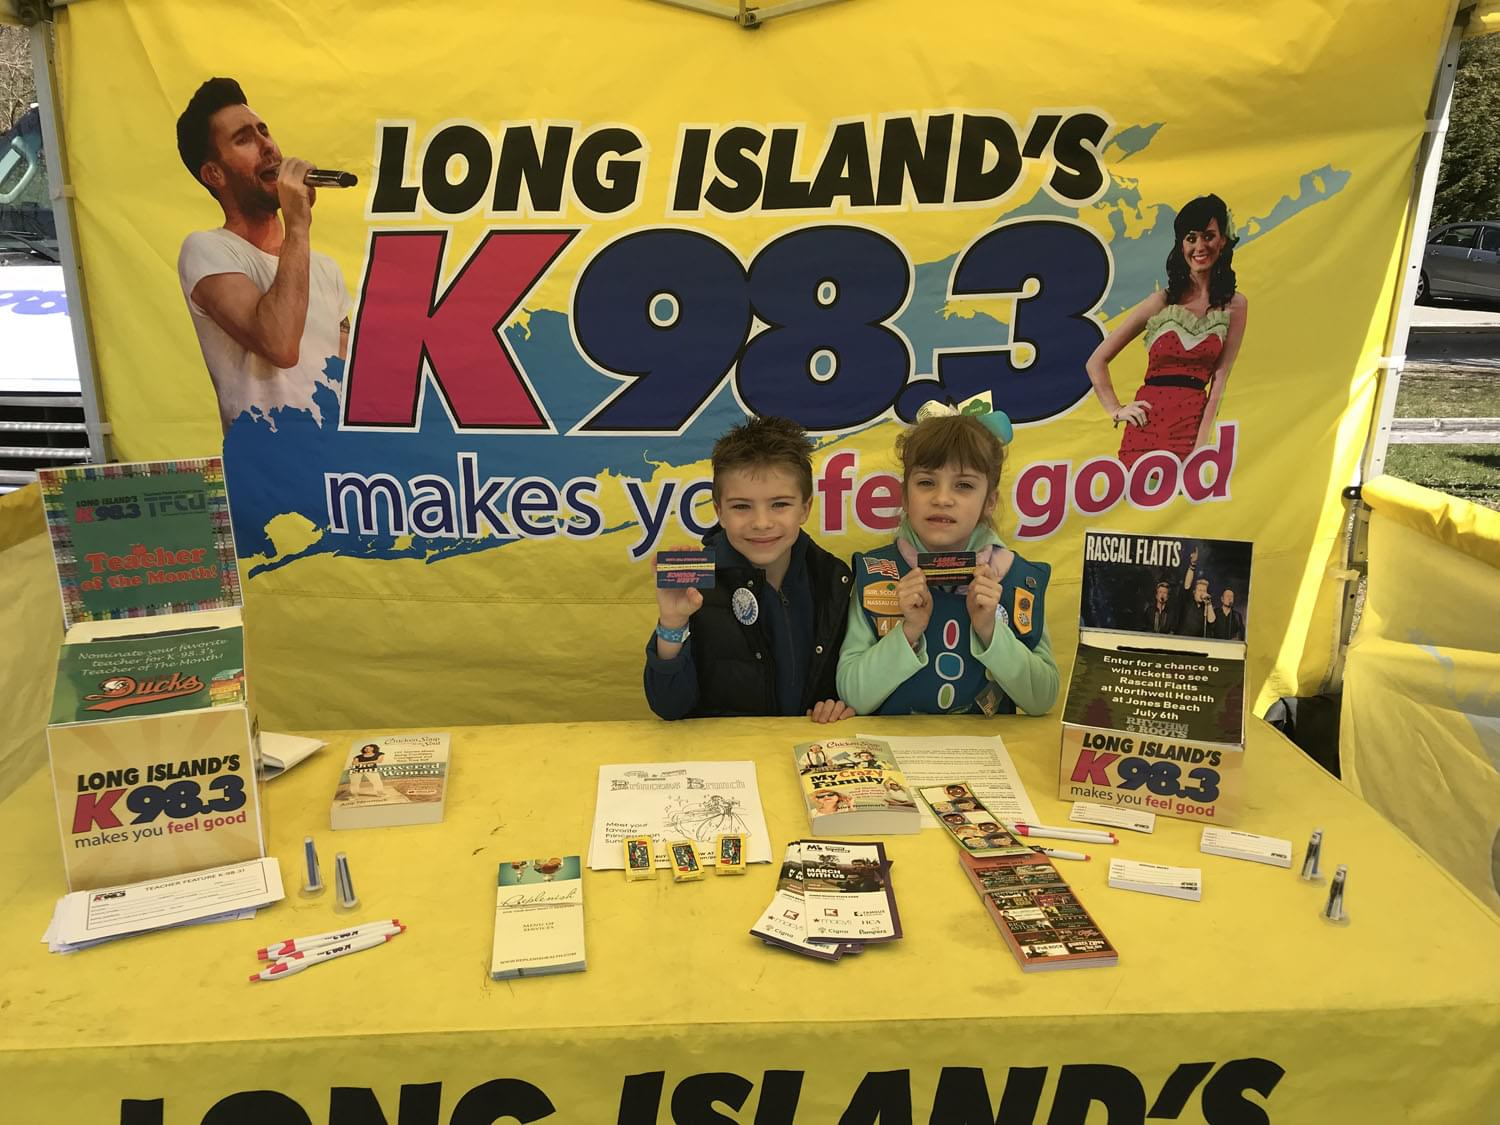 K-98.3 at The Girl Scouts